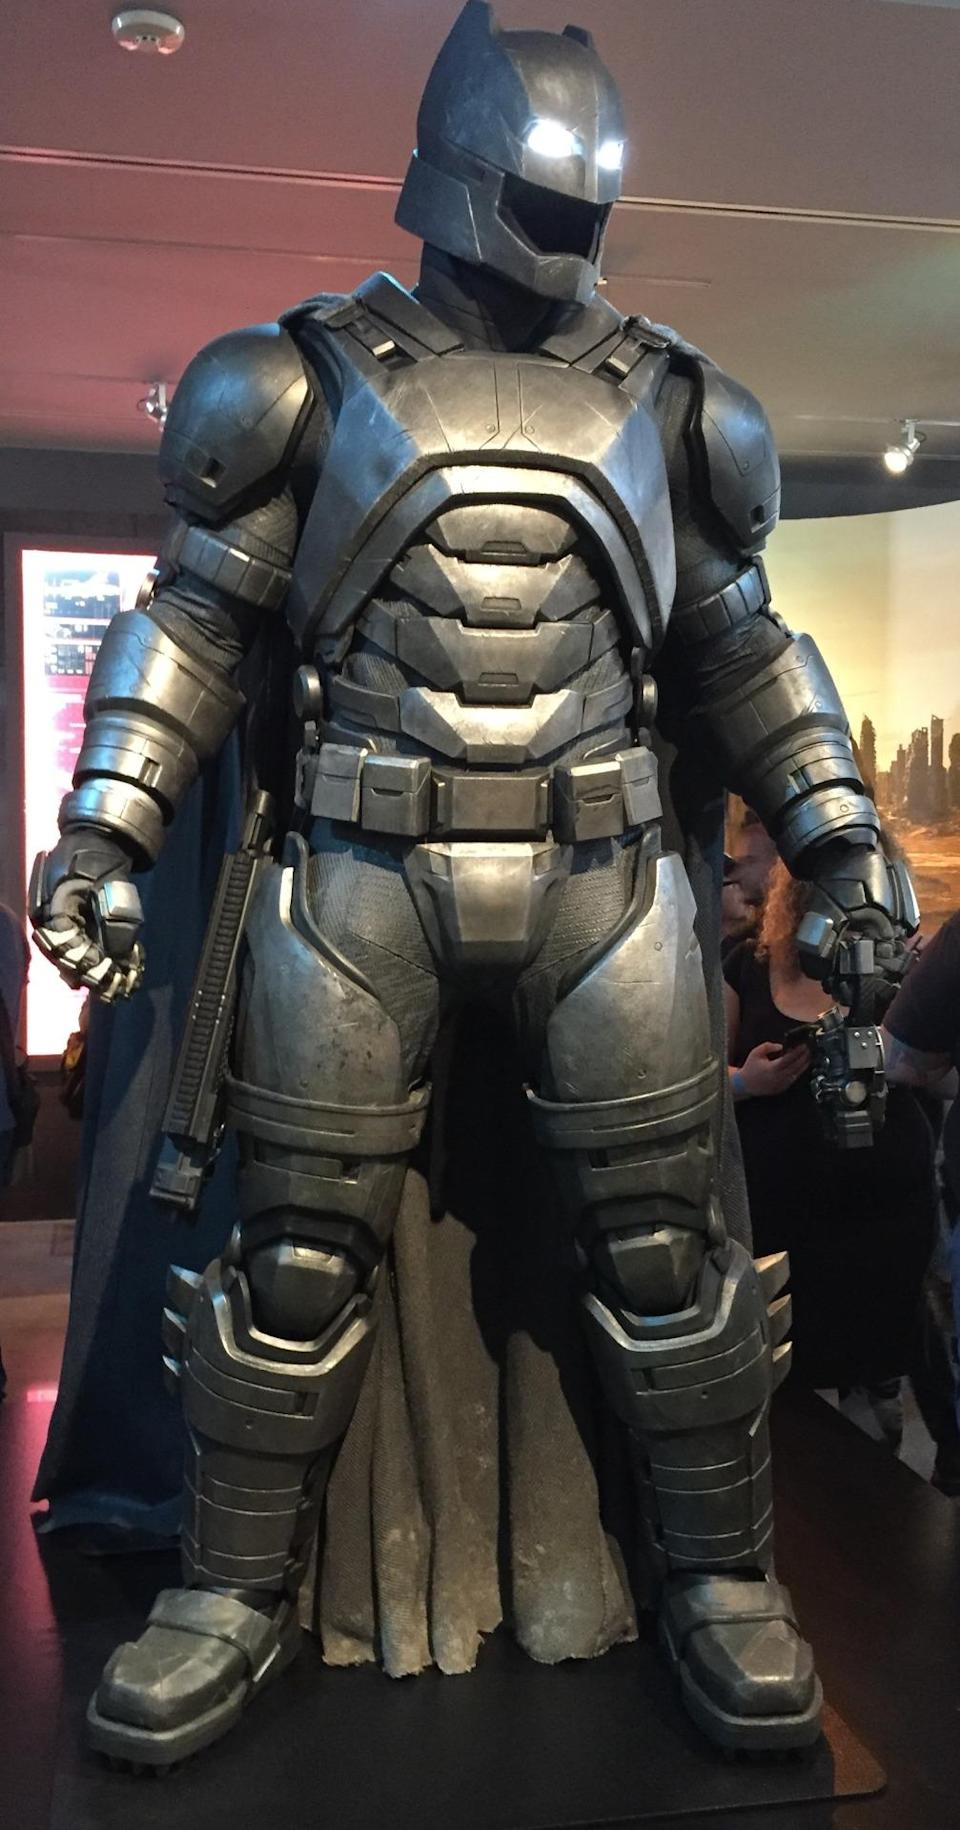 <p>Bruce Wayne borrowed a page from Tony Stark for this reinforced suit designed to take on Superman.</p>